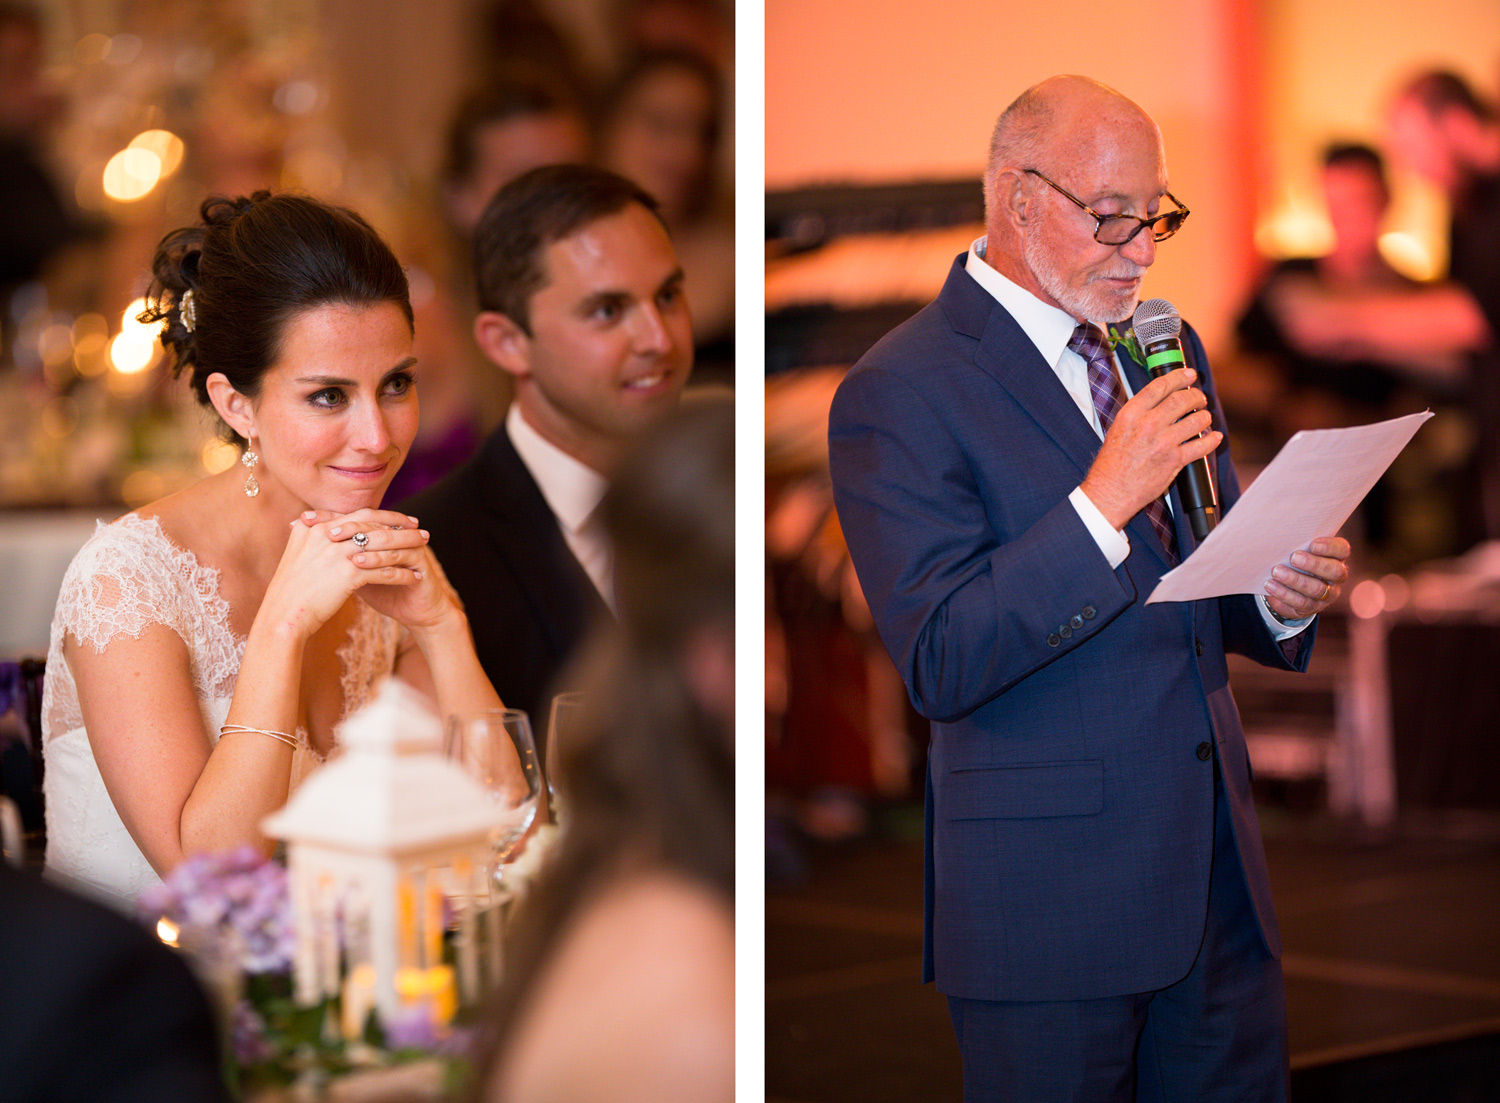 Hyatt-wedding-speech-3